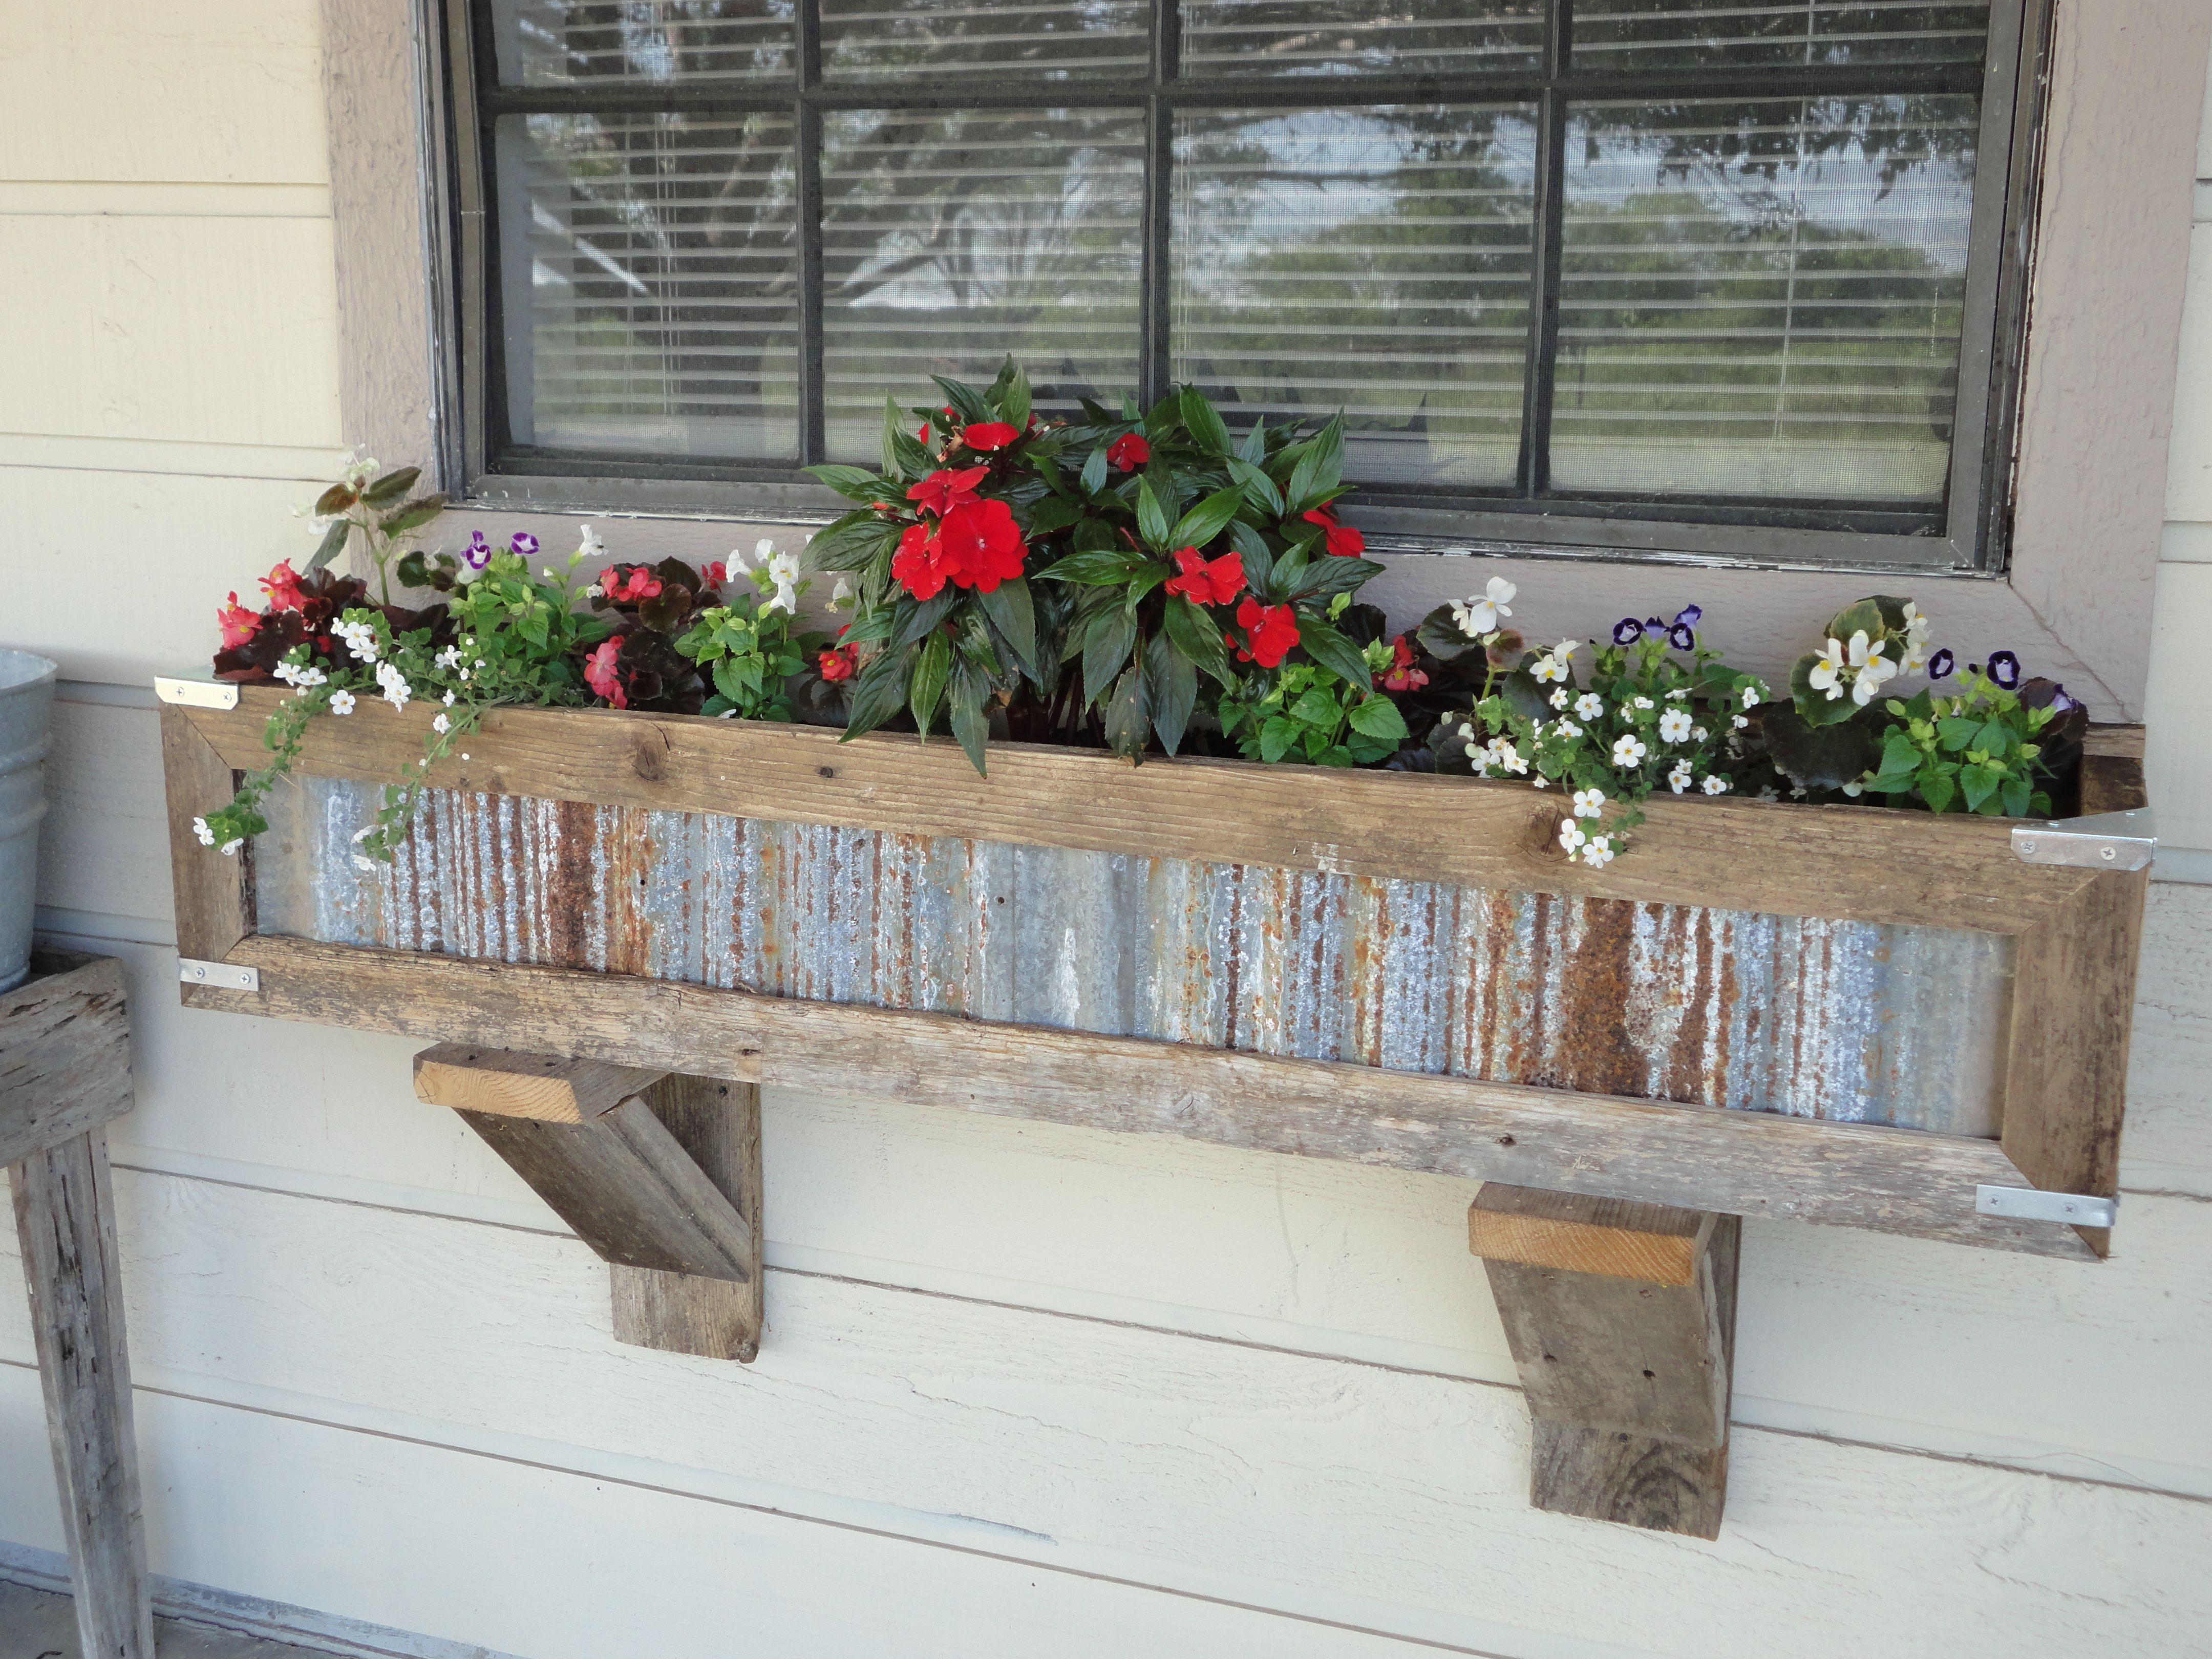 Handcrafted Rustic Window Box Planters out of reclaimed